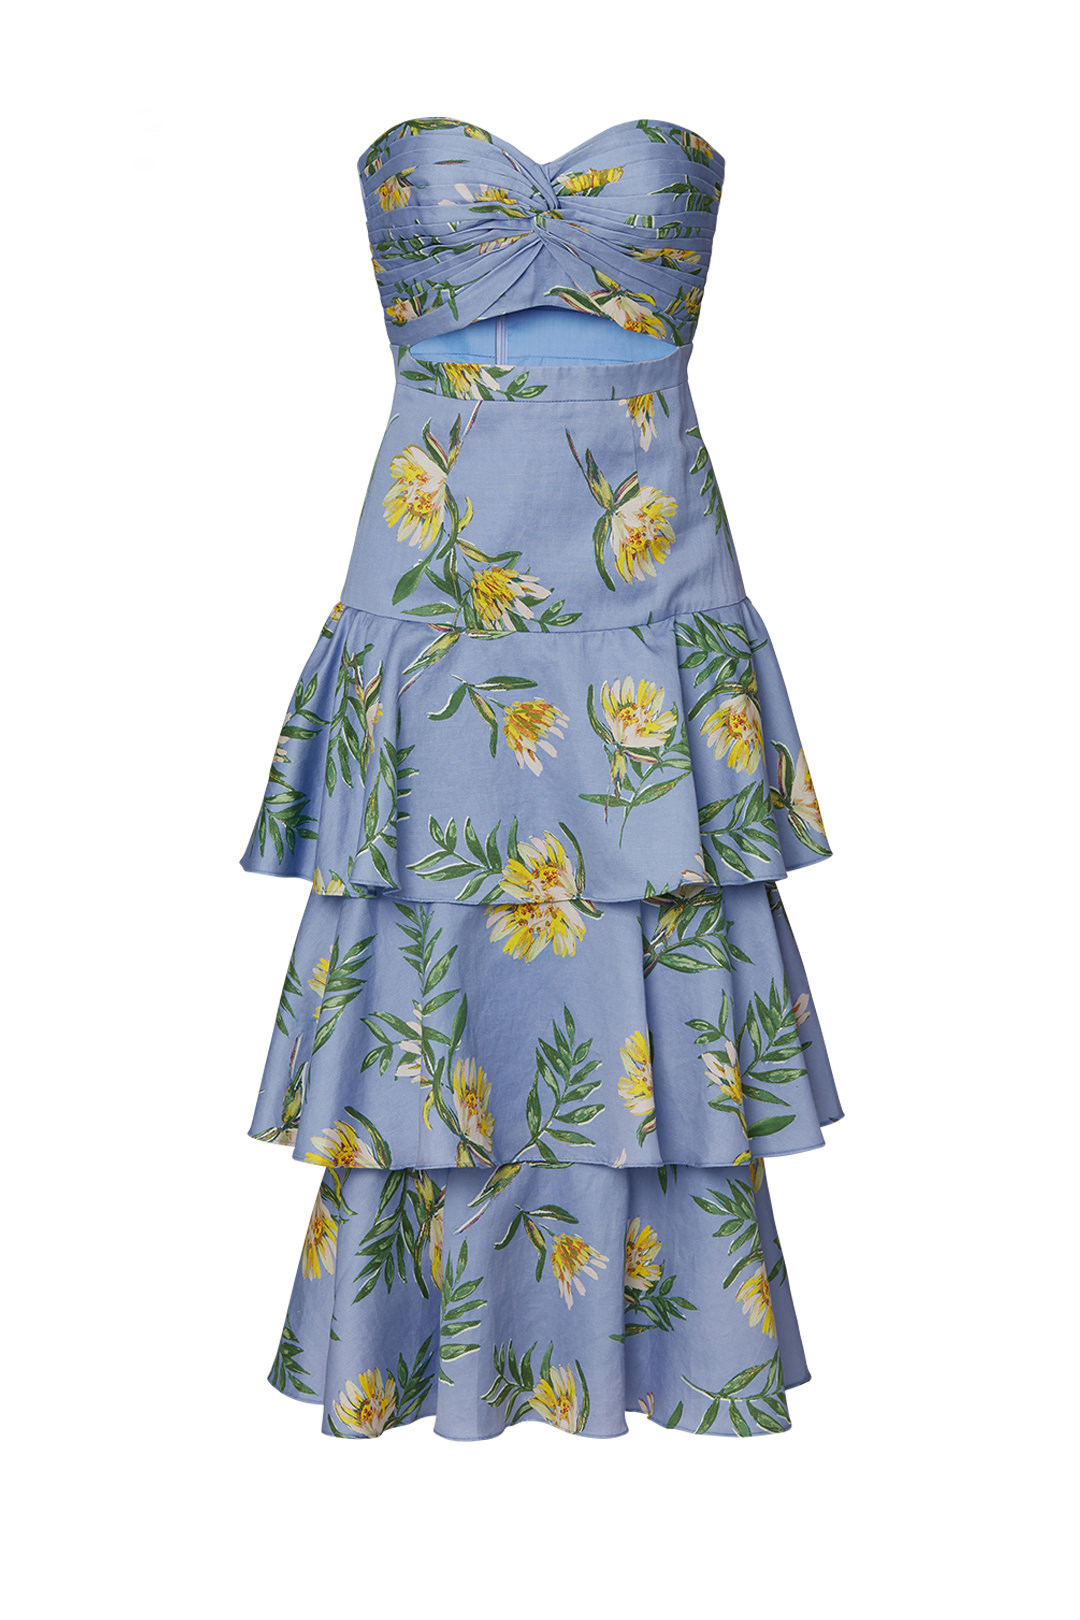 AMUR Roxy Dress - I just rented this for my trip to Argentina and I forgot it was fall there so….whoops wearing it anyways cause it's cute AF.